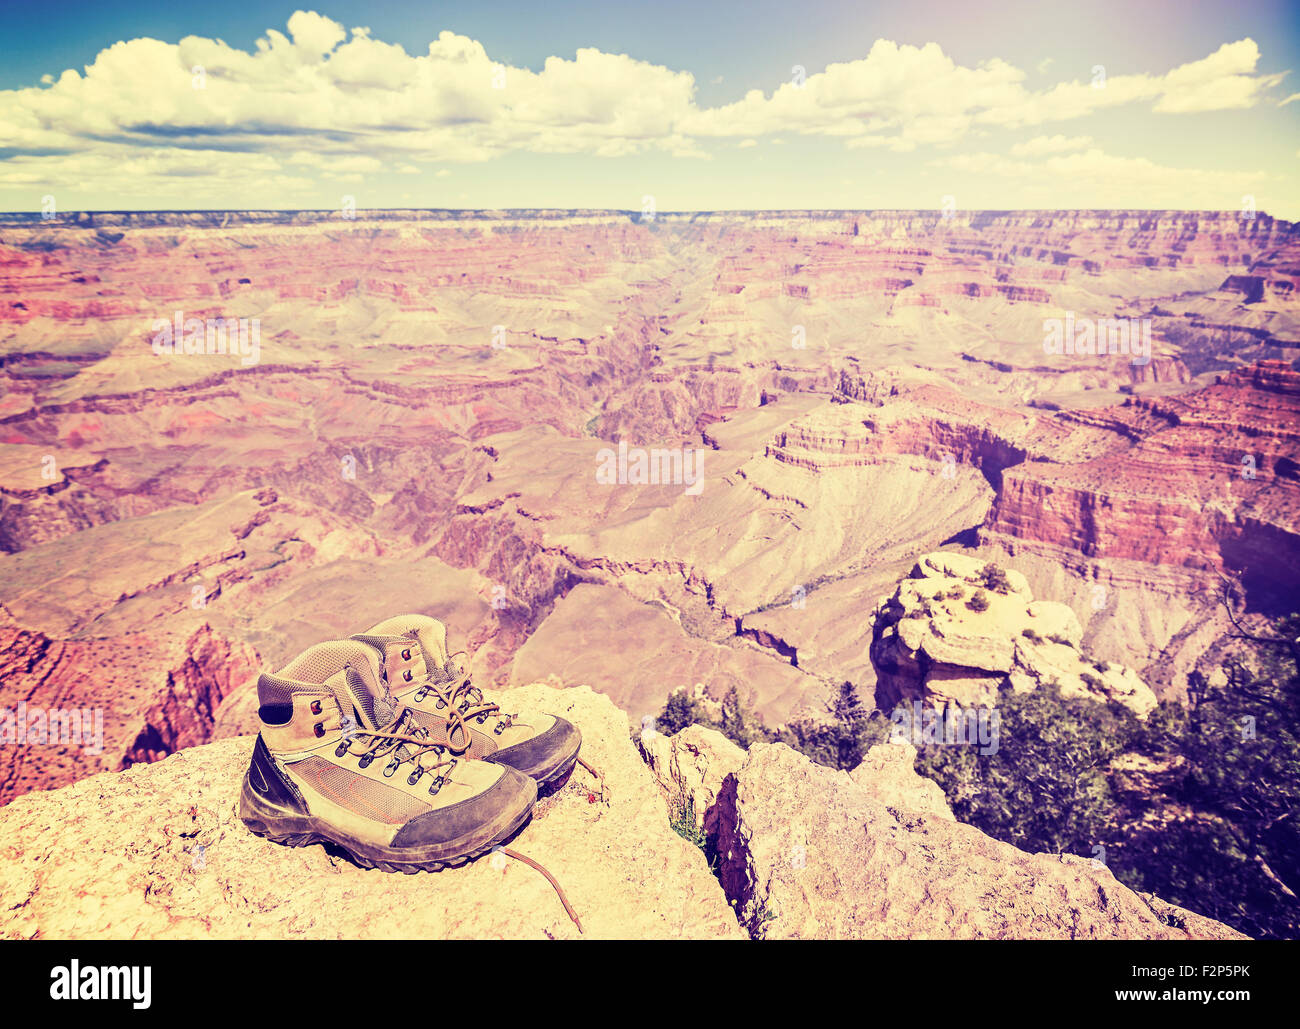 Vintage toned old trekking shoes standing on south rim of Grand Canyon, adventure concept photo. - Stock Image